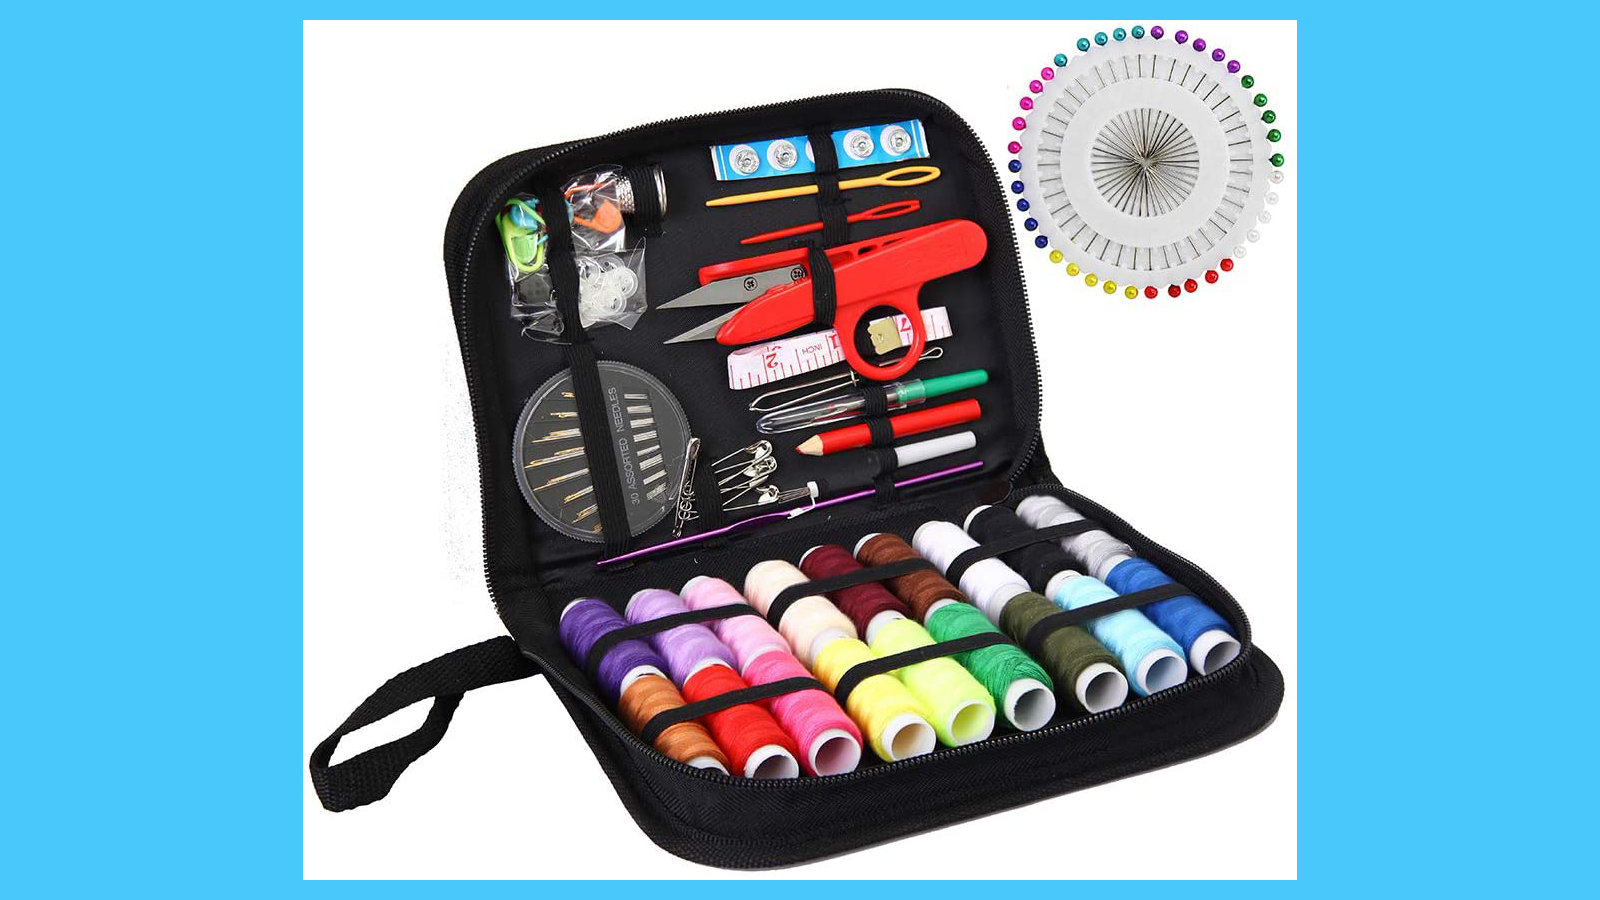 With a Good Sewing Kit, a Rip or Tear is Sew Big Deal